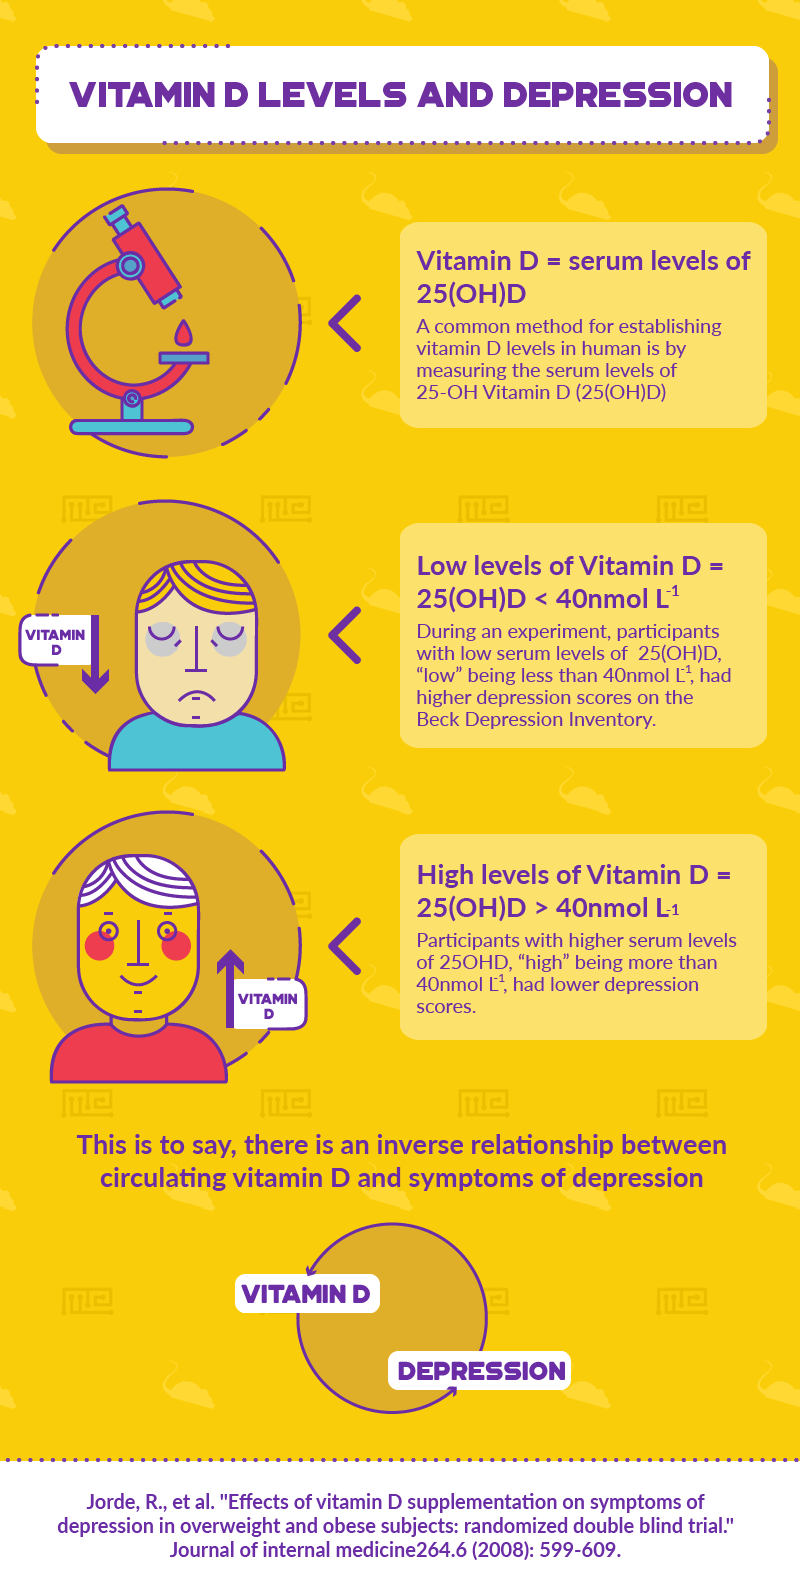 vitamin d and anxiety depression infographic